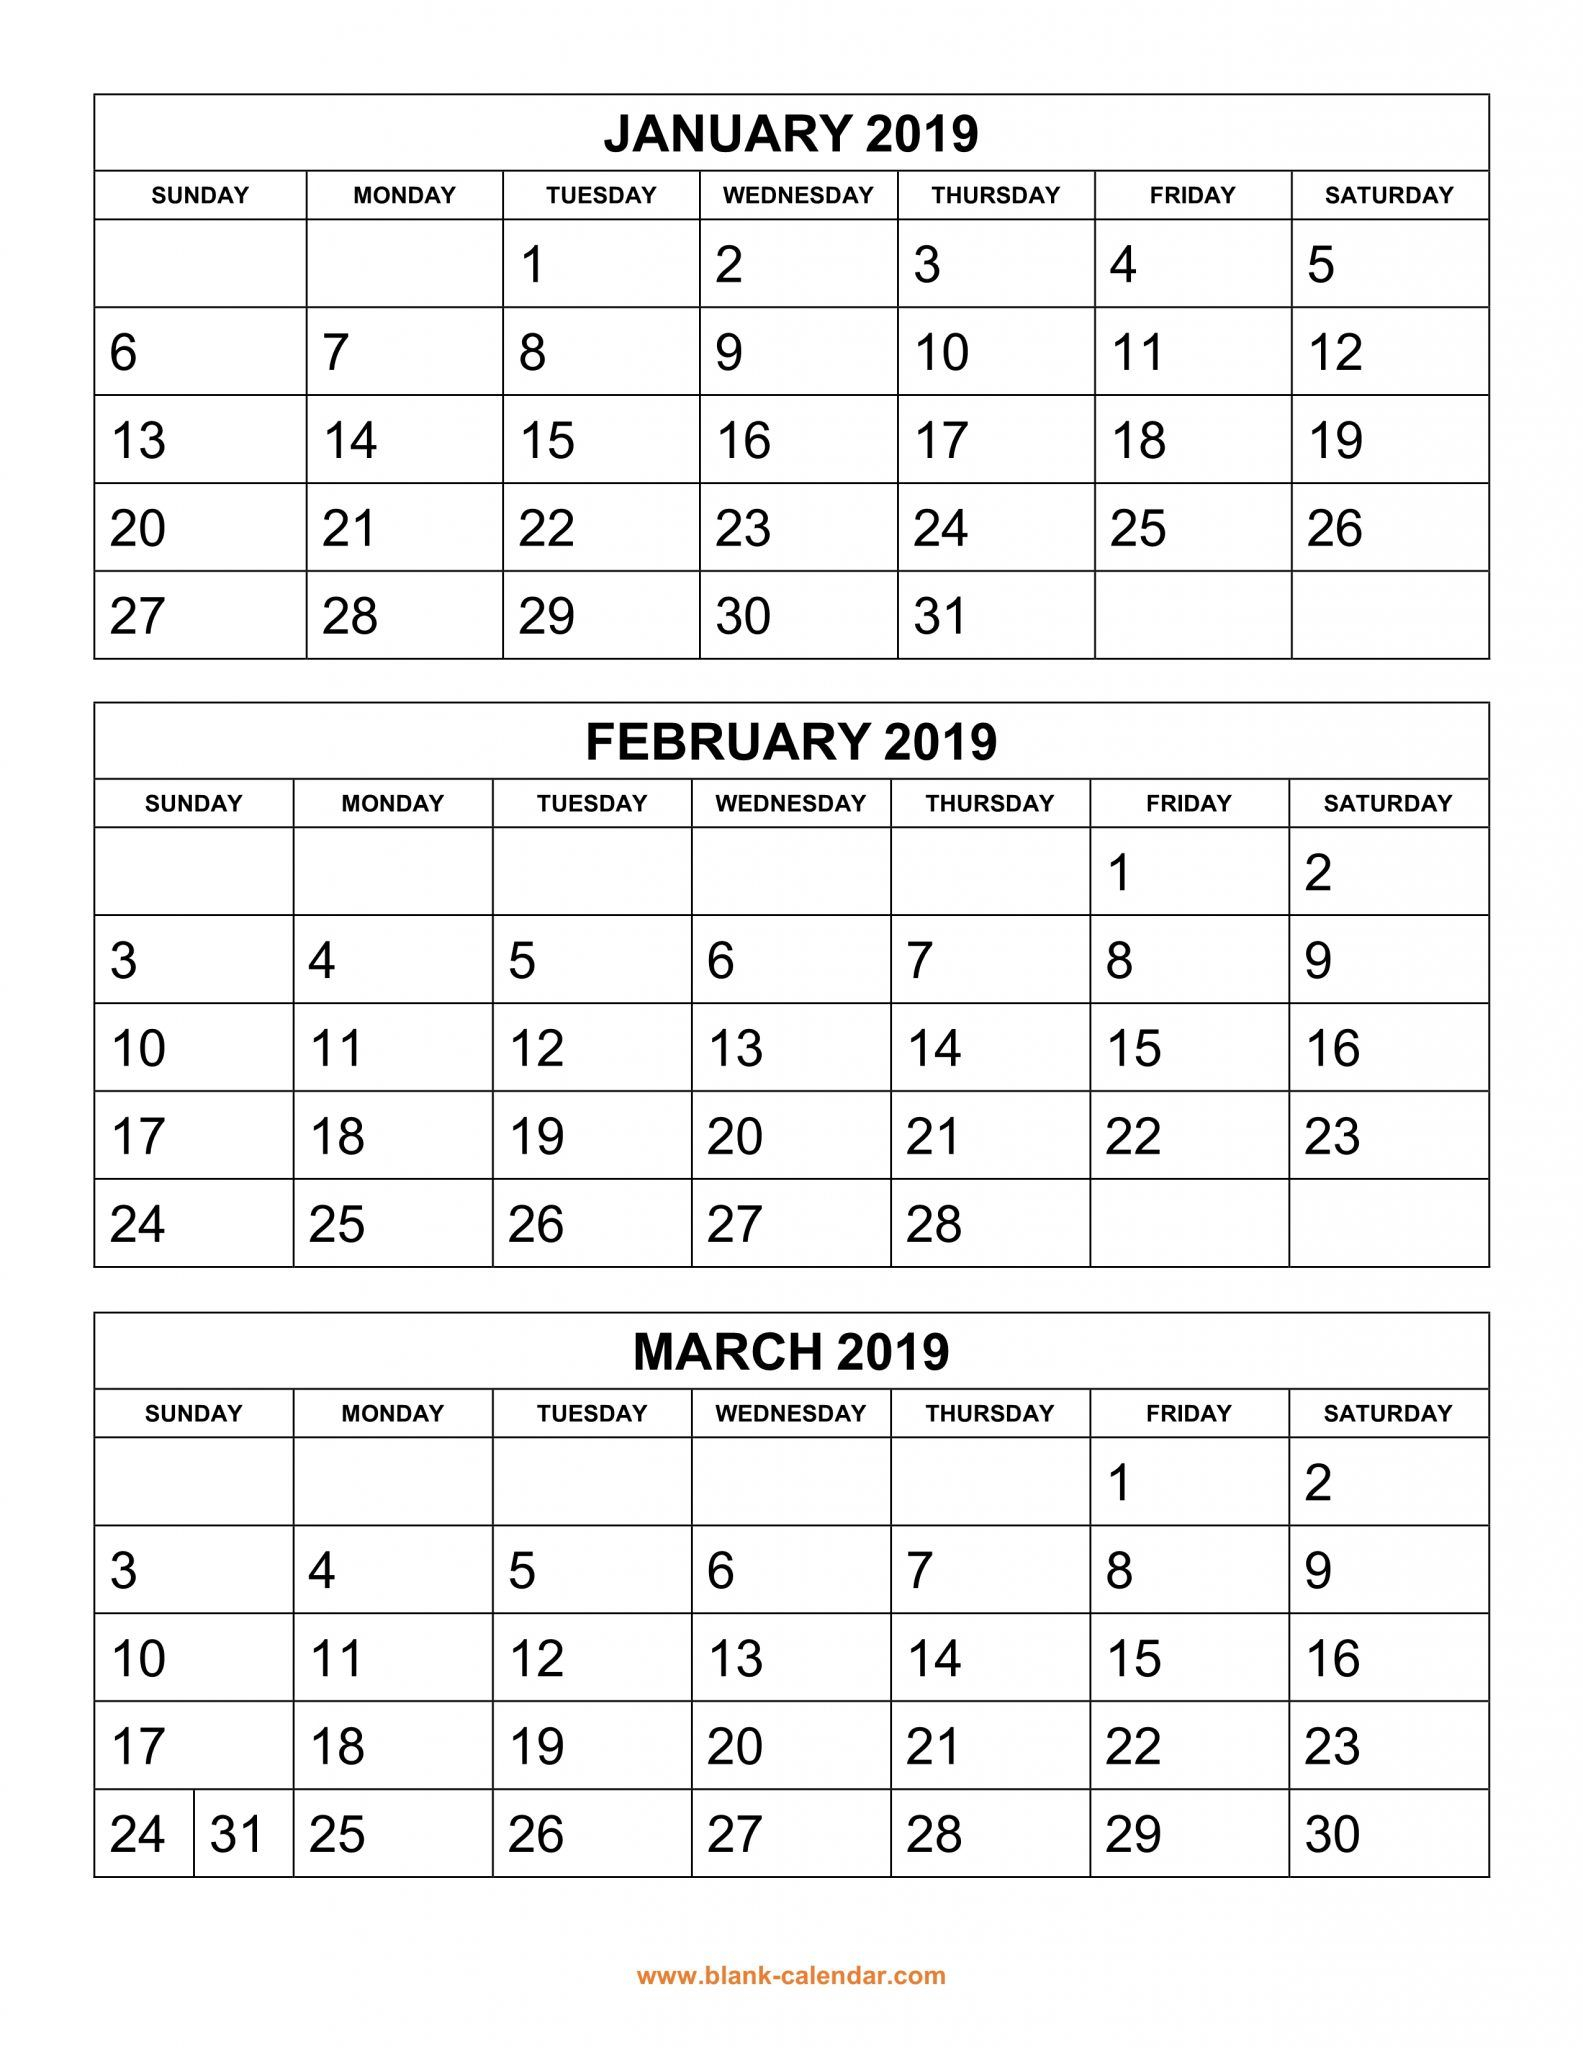 Get Free 2019 3 Month Calendar Templates Printable with 3 Month Printed A3 Calendar 2021